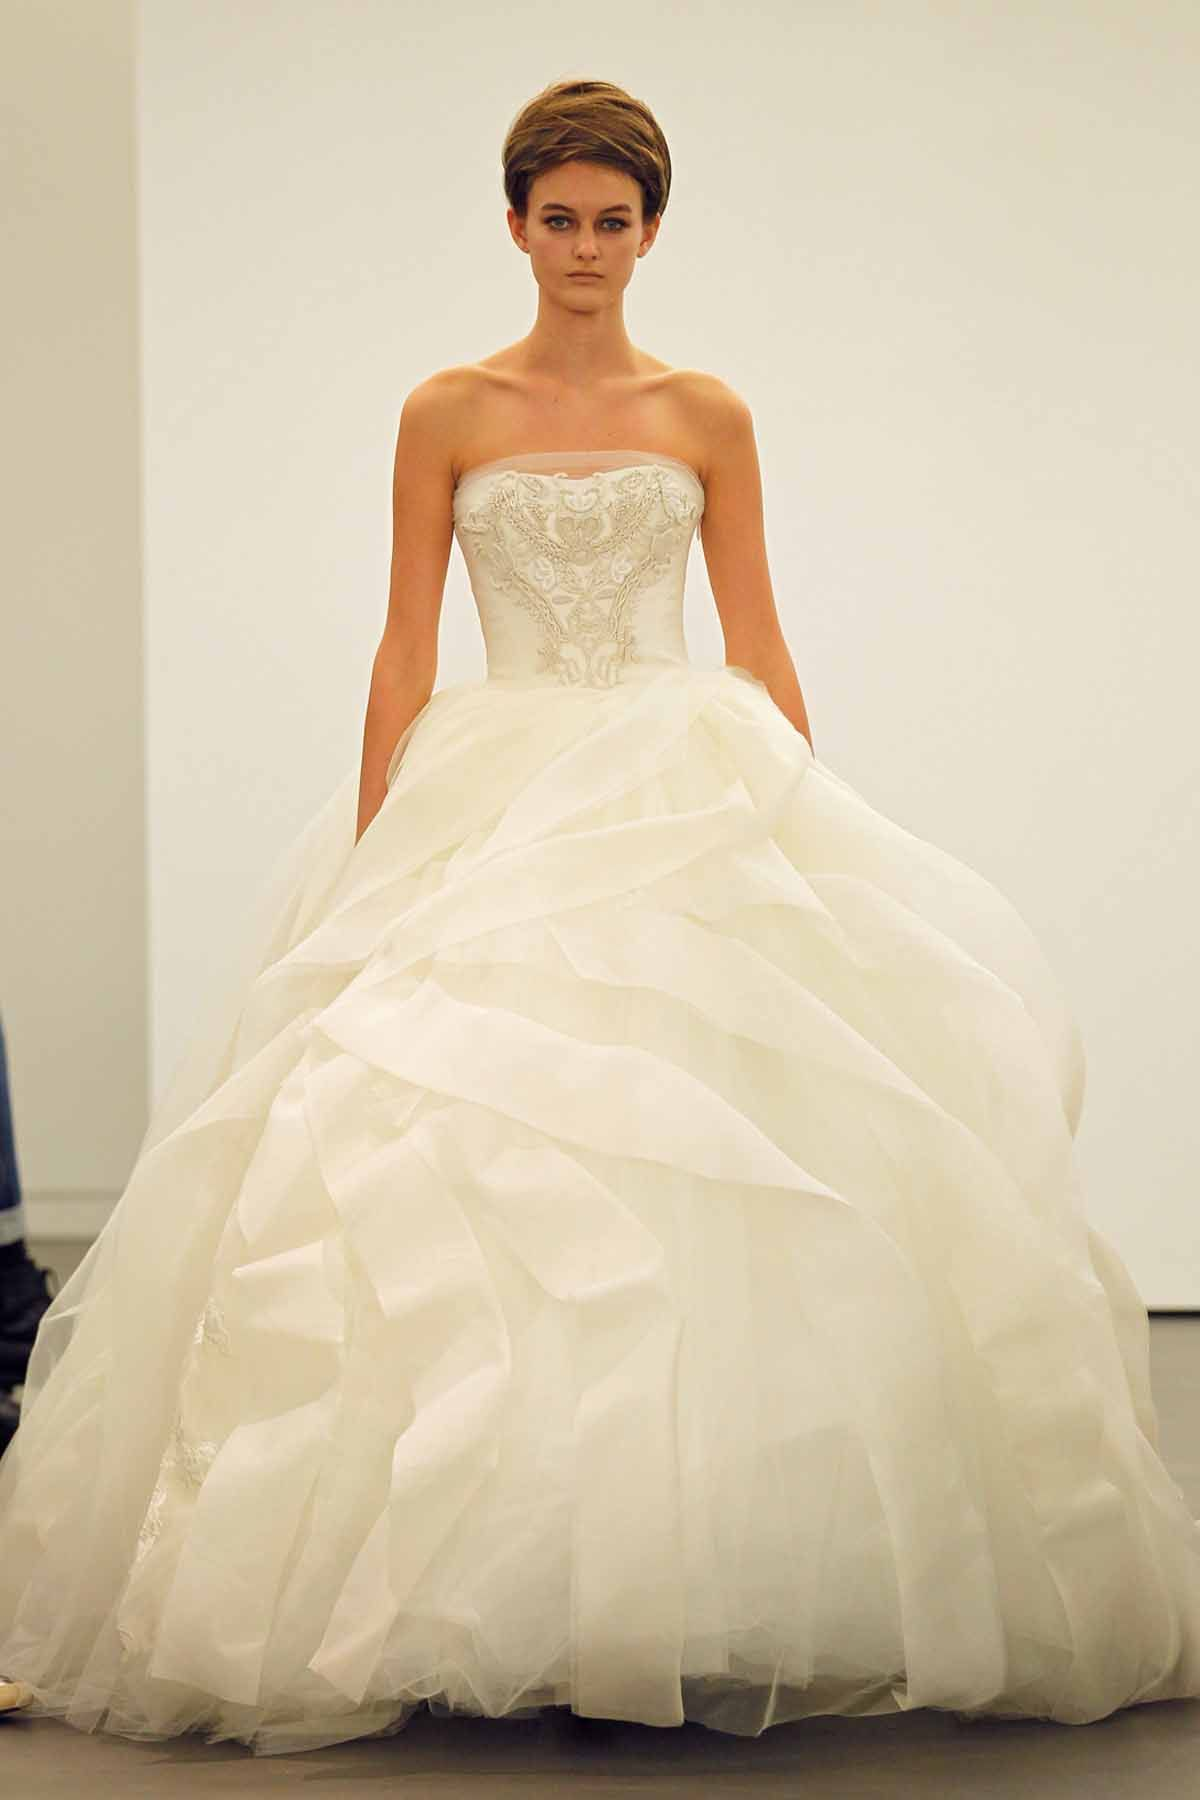 Strapless ball gown with ribbon embroidered bodice and silk organza floating flange skirt accented by lace applique detail at hem.